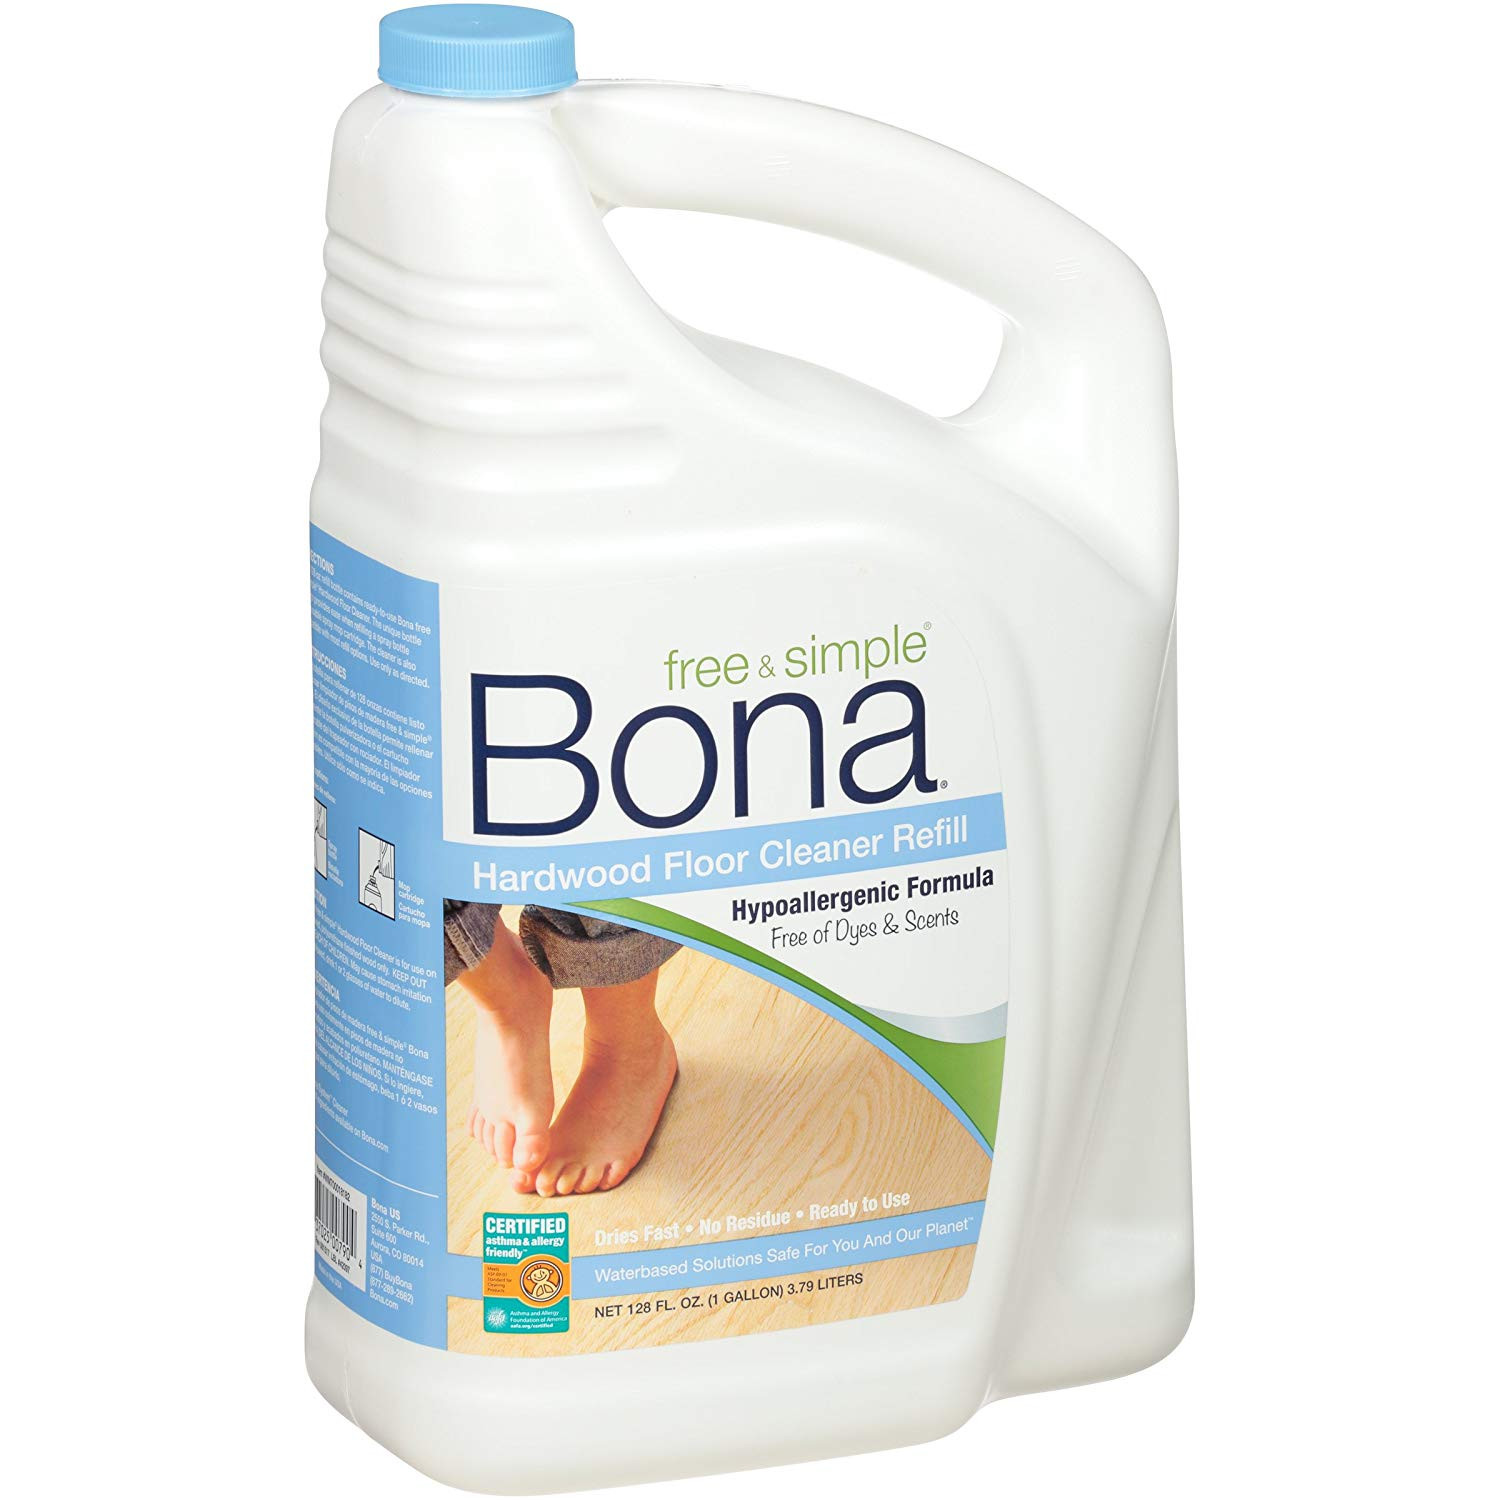 Wc Hardwood Floors Inc Of Amazon Com Bona Wm700018182 Free Simple Hardwood Floor Cleaner within Amazon Com Bona Wm700018182 Free Simple Hardwood Floor Cleaner Refill 128 Oz Health Personal Care